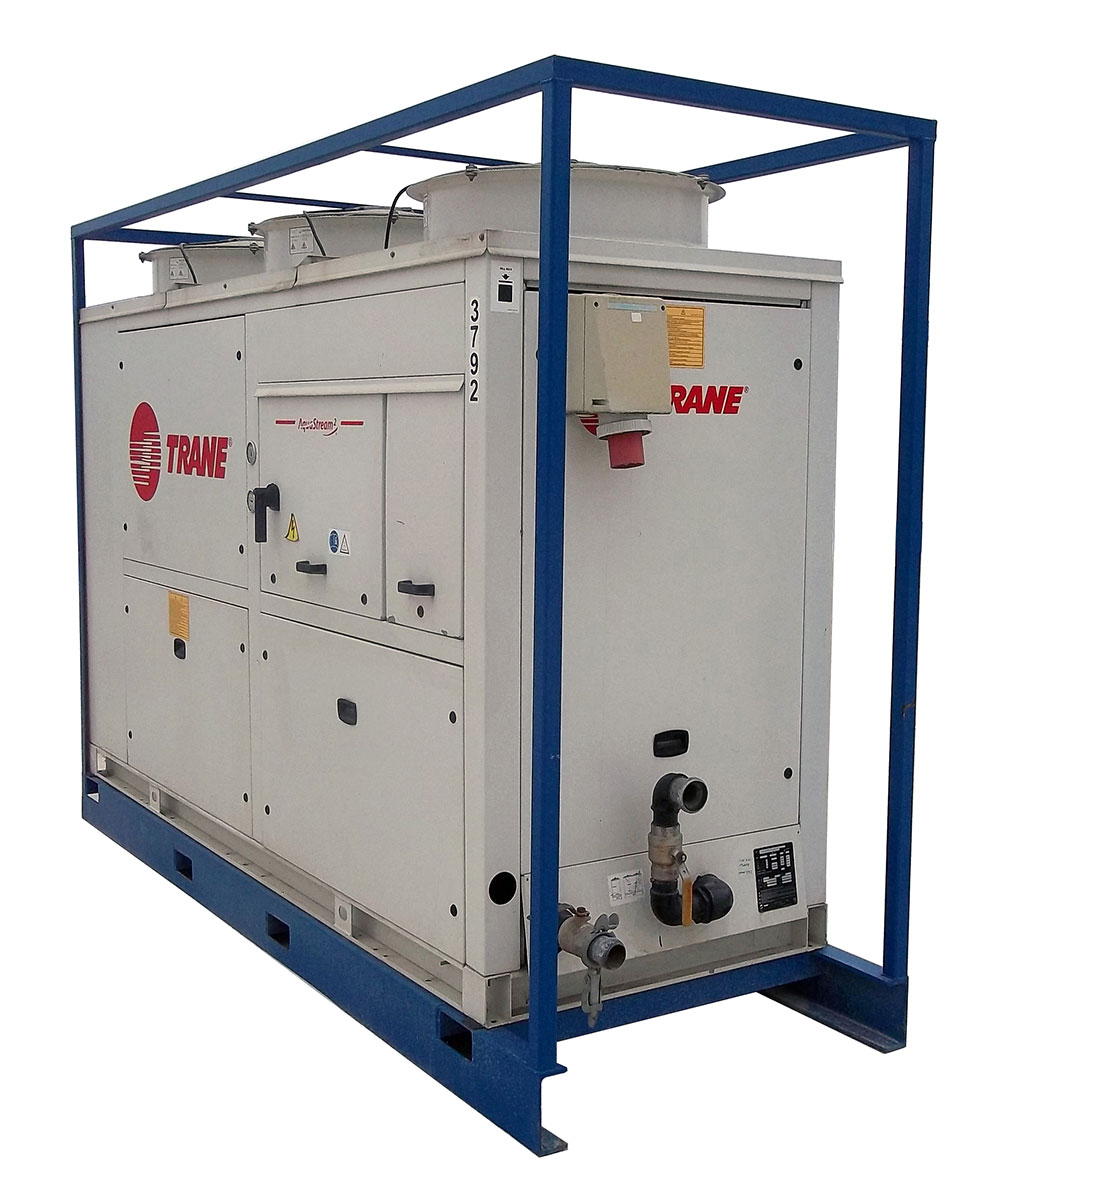 150kW Trane Heat Pump Chiller